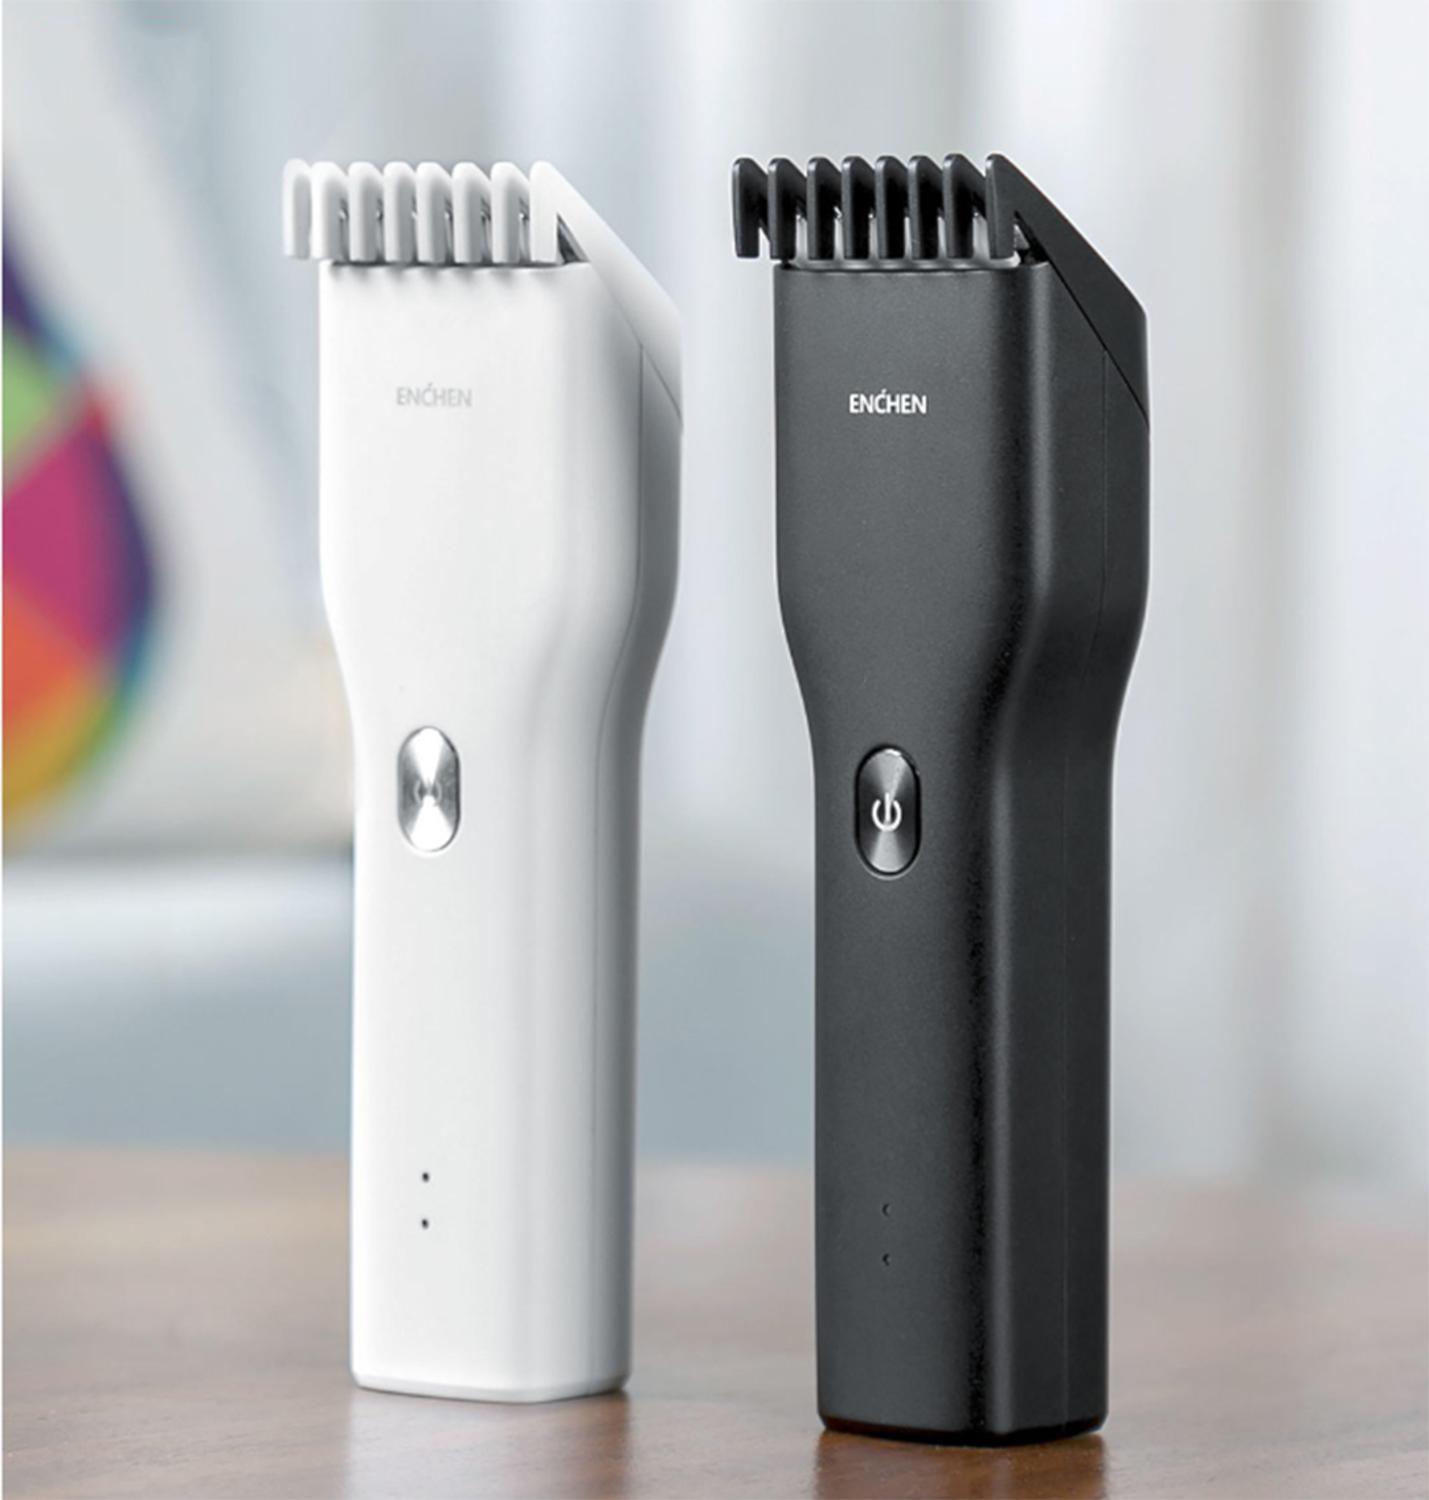 Men's Electric Hair Clippers Clippers Cordless Clippers in Accra-Ghana 1